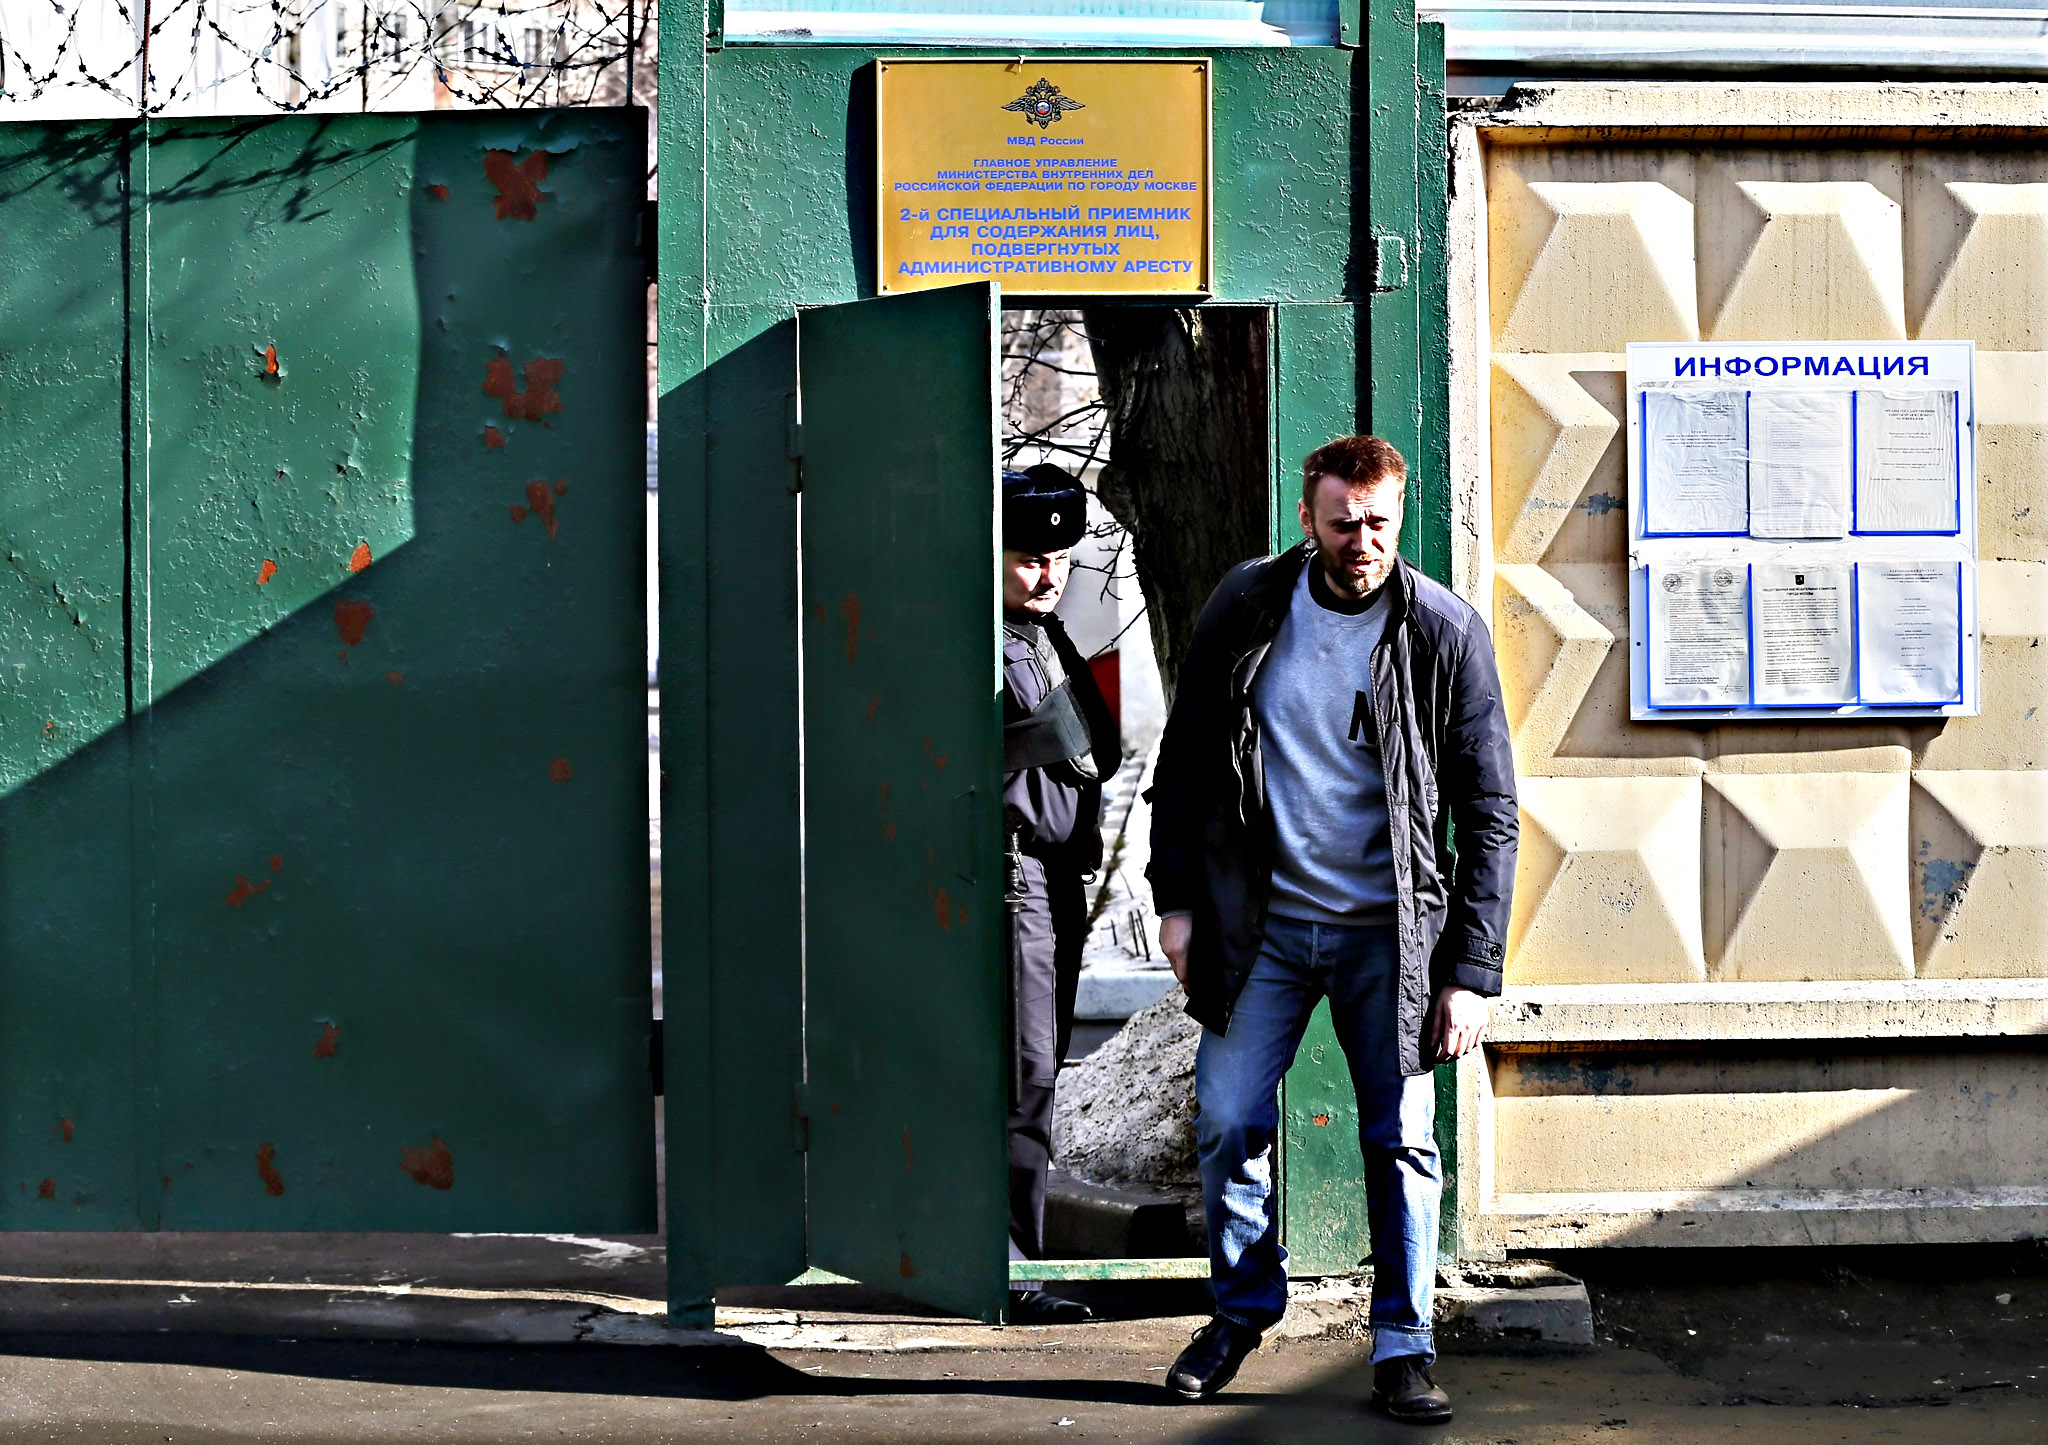 Russian opposition leader Alexei Navalny walks out of a detention center in Moscow, Russia, 06 March 2015. Navalny was released after spending 15 days in custody for handing out leaflets in the subway.